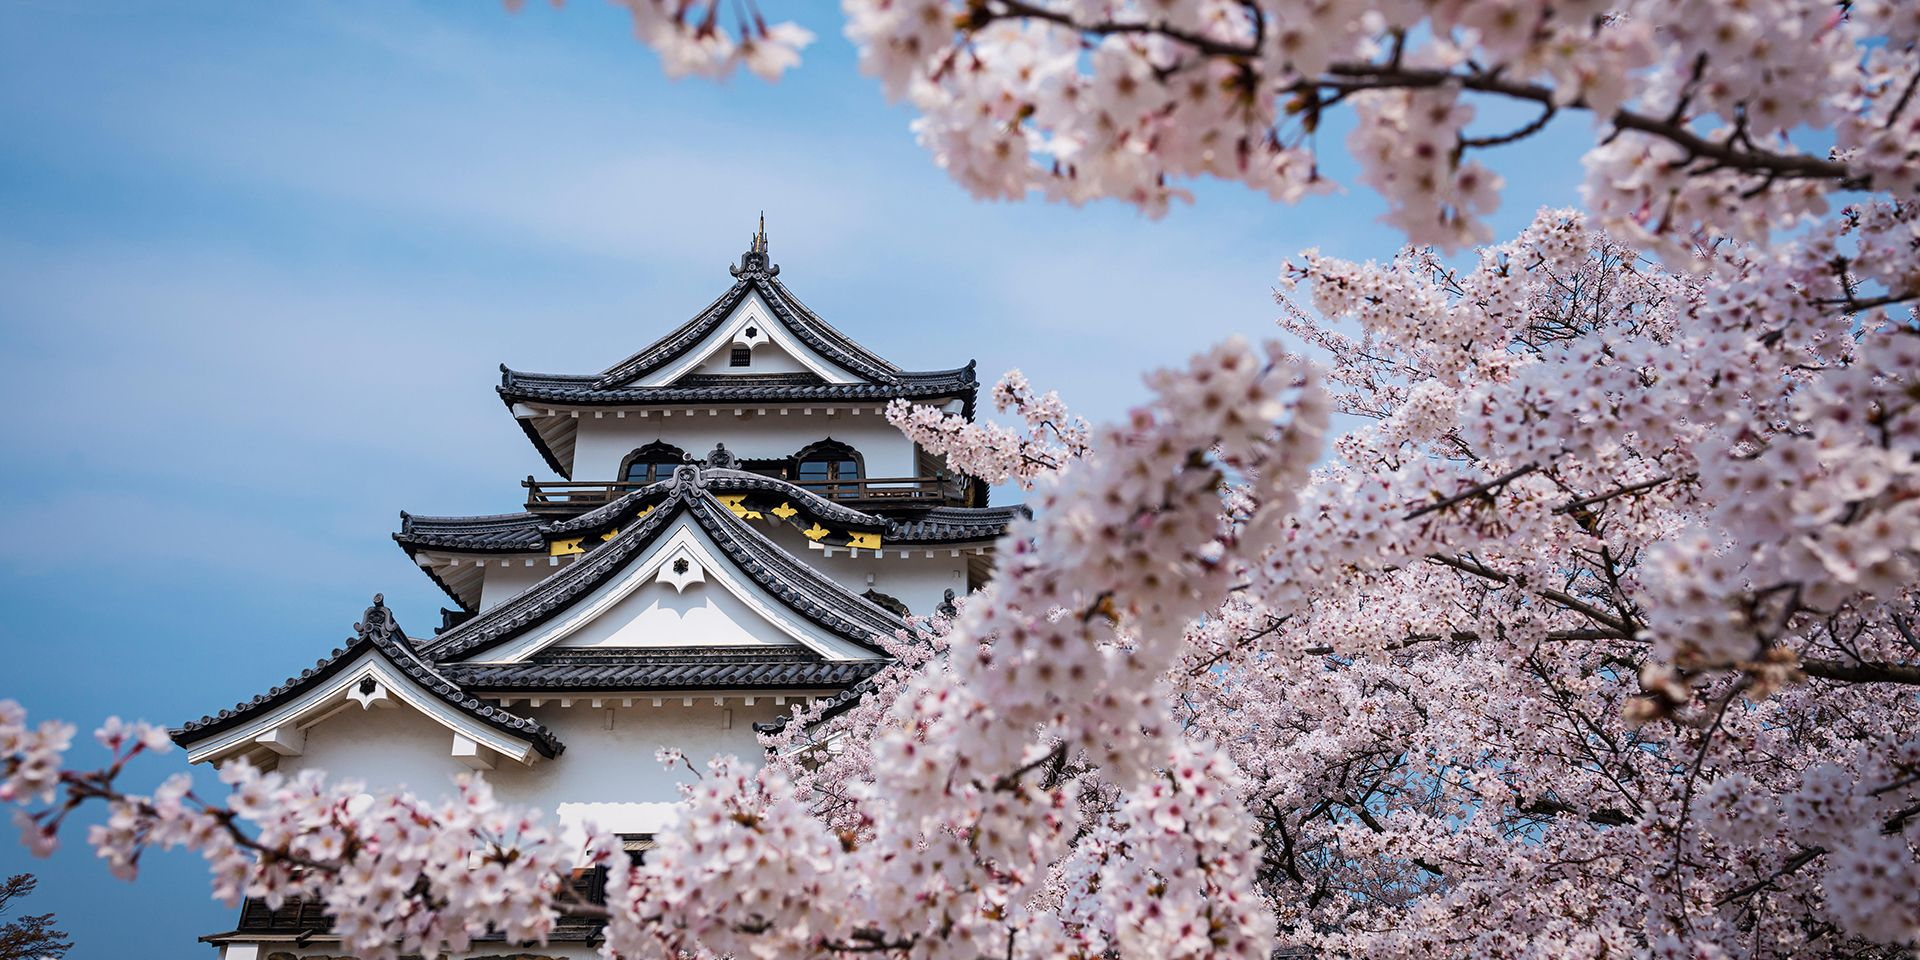 No Regrets Things To Do In Tokyo In 72 Unforgettable Hours Japan Cherry Blossom Japan Cherry Blossom